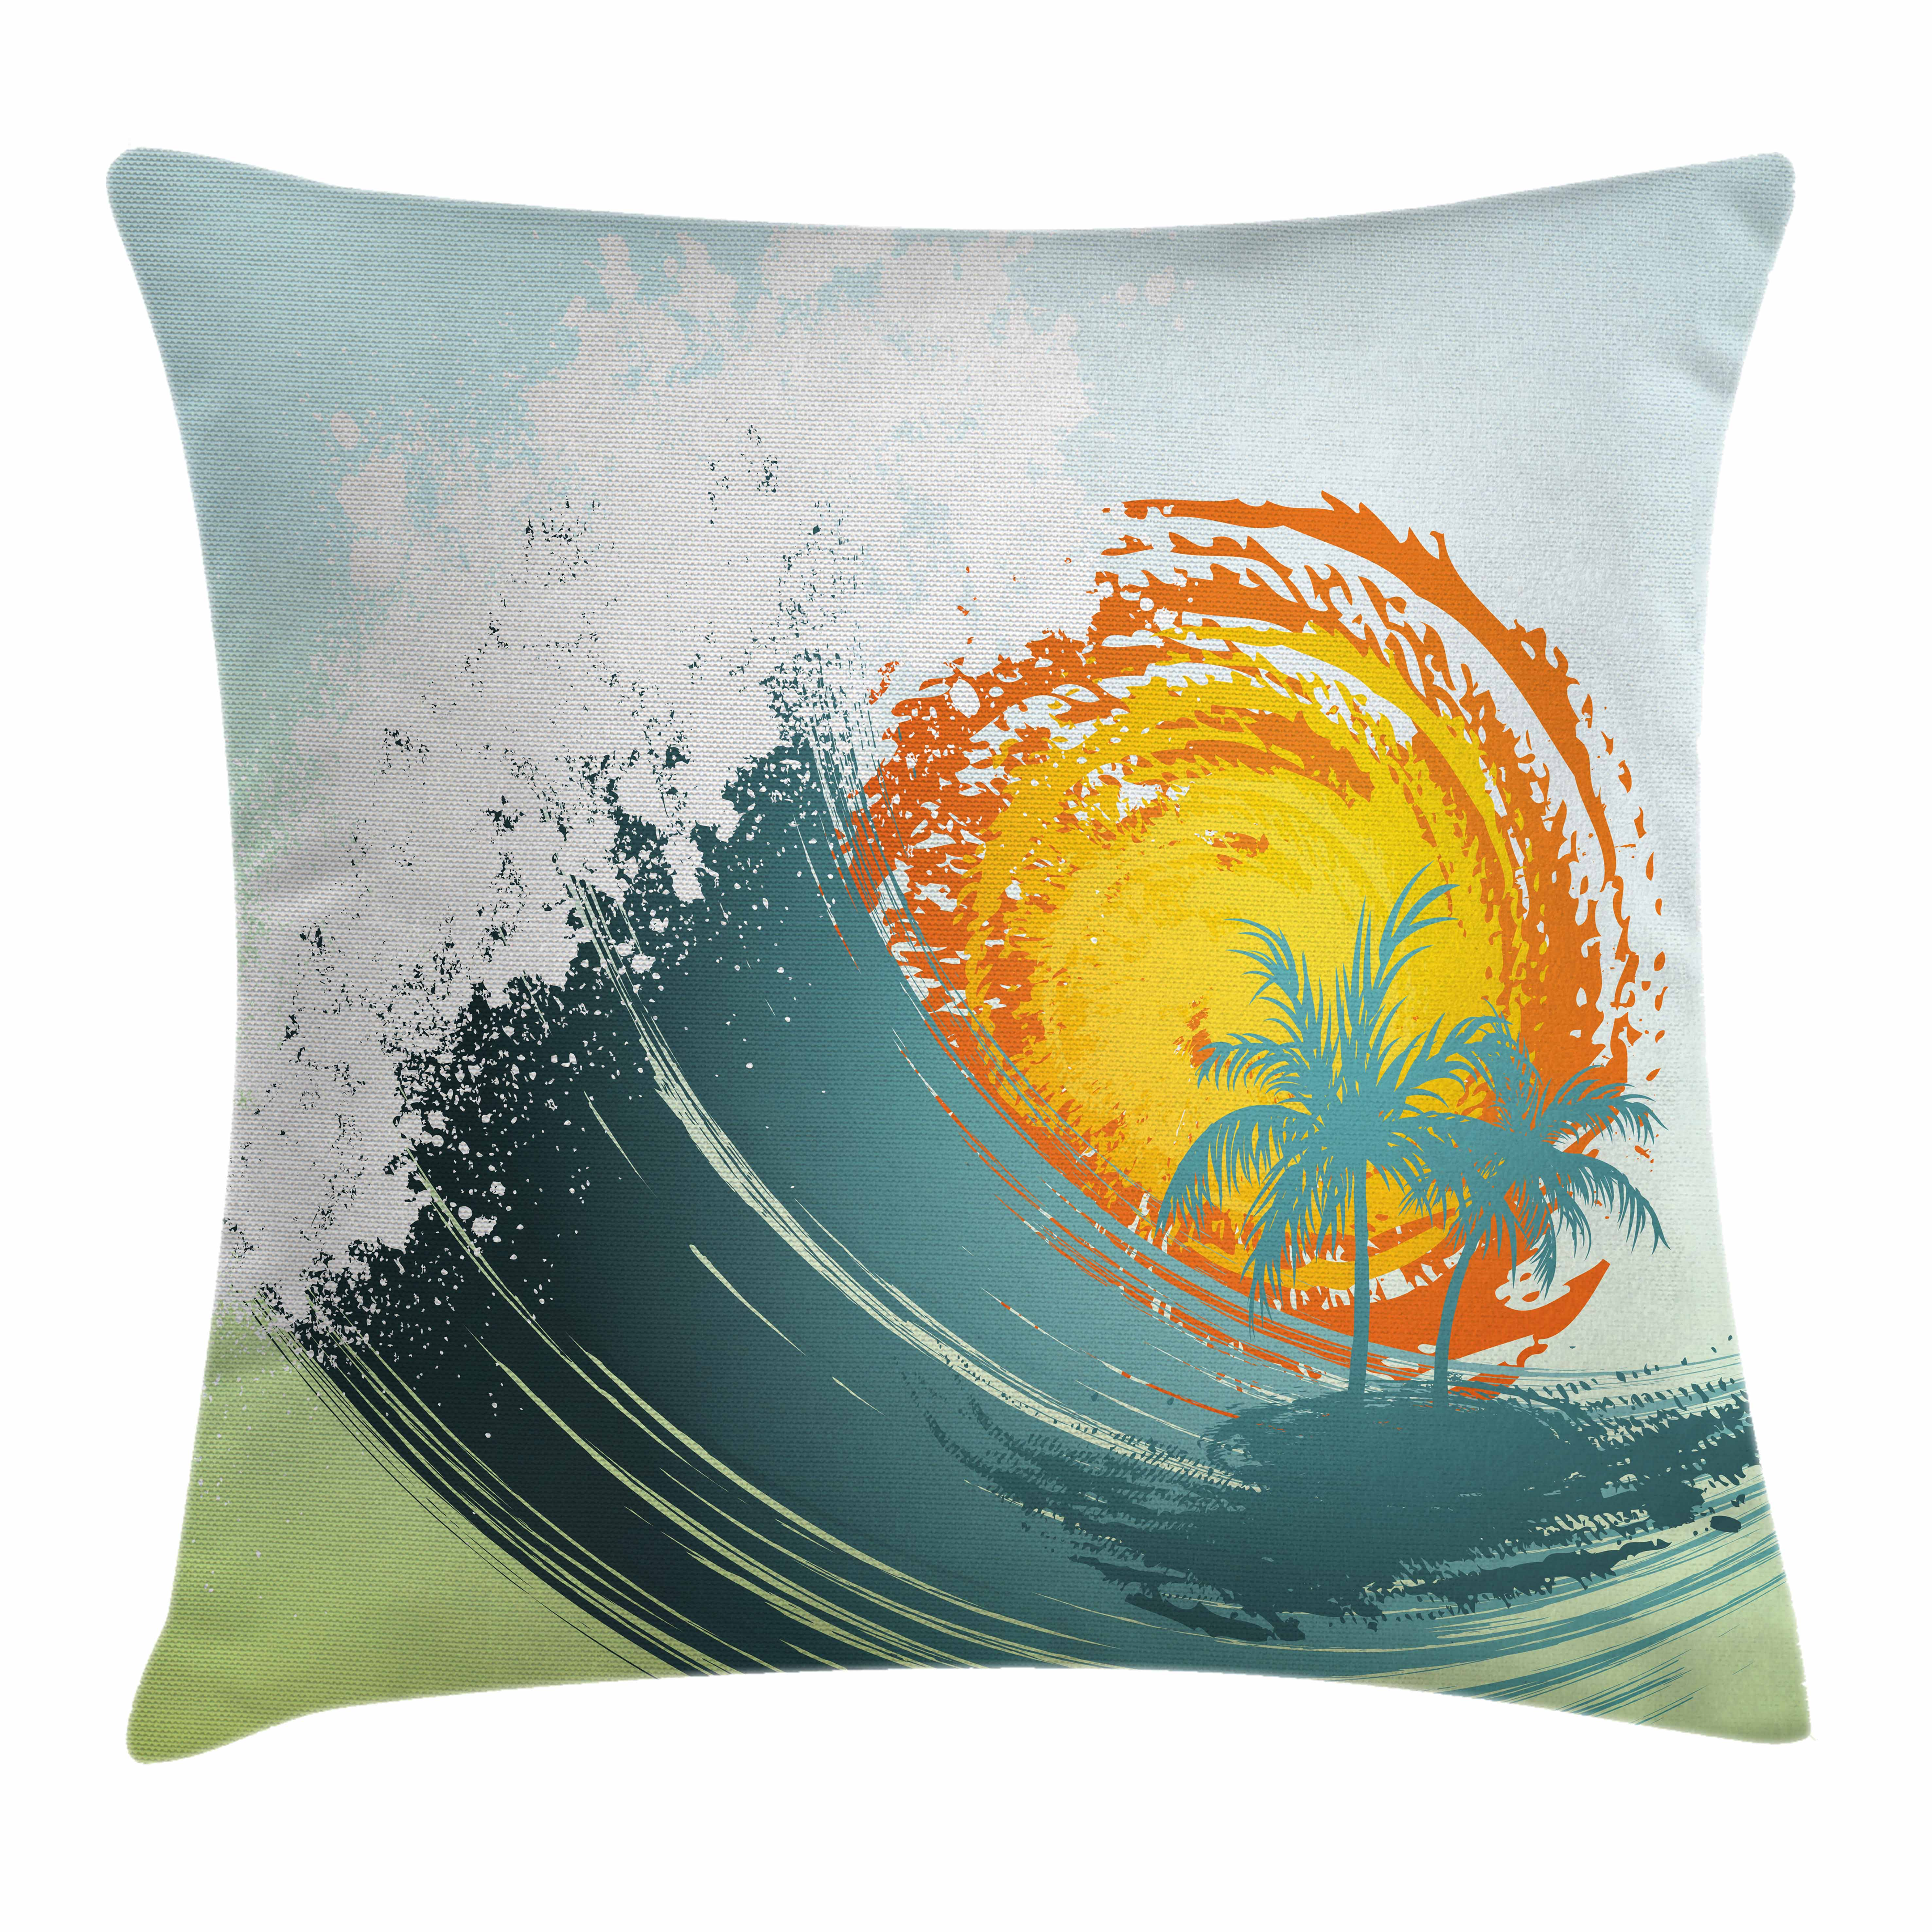 Tropical Throw Pillow Cushion Cover, Exotic Coconut Palm Trees Sun Ocean Wave Summer Graphic, Decorative Square Accent Pillow Case, 24 X 24 Inches, Pale Green Petrol Blue Earth Yellow, by Ambesonne